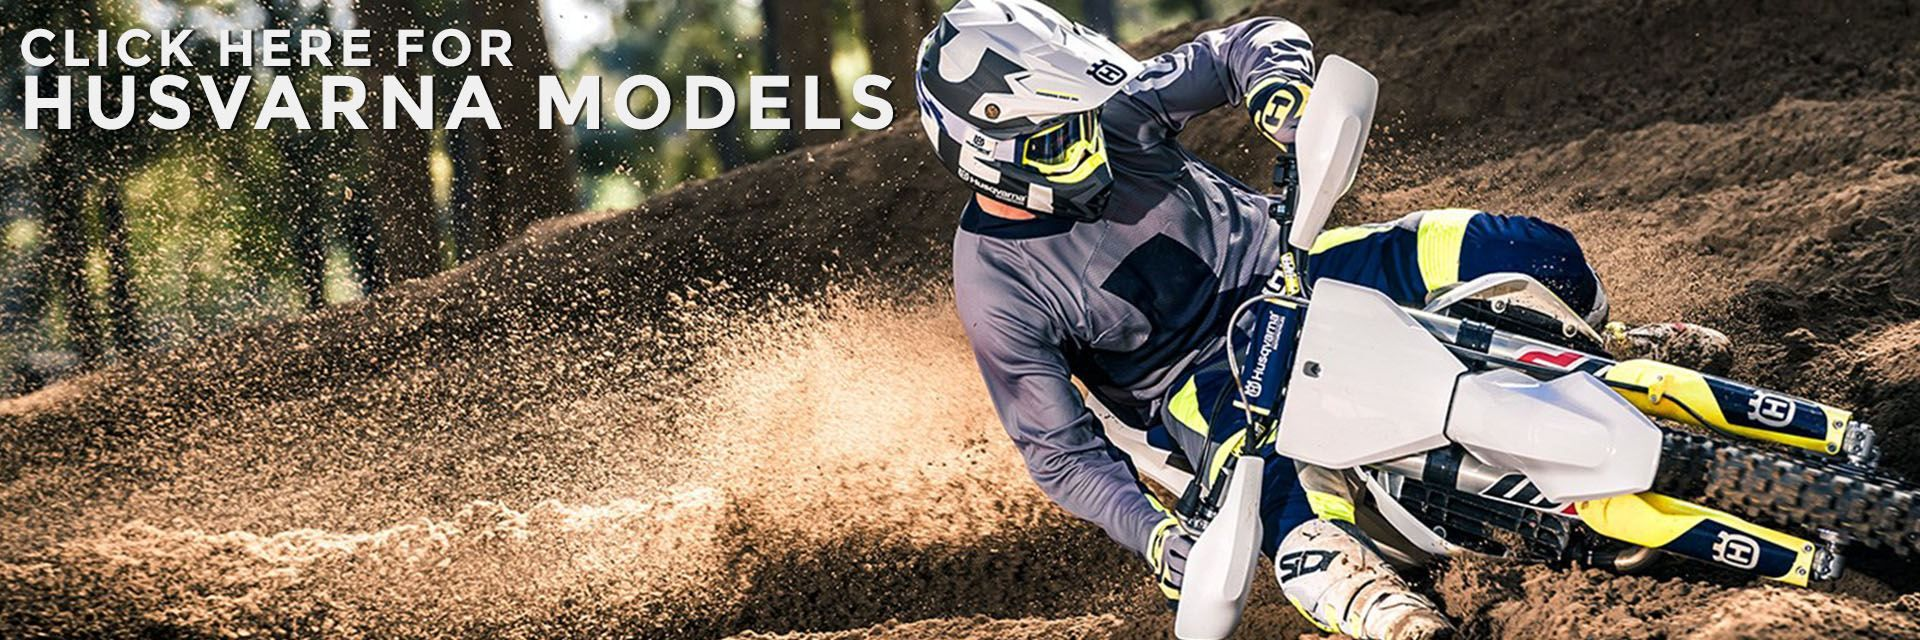 Shop Husqvarna Motocross Motorcycles at Grass Roots Motorcycles in Cape Girardeau, MO